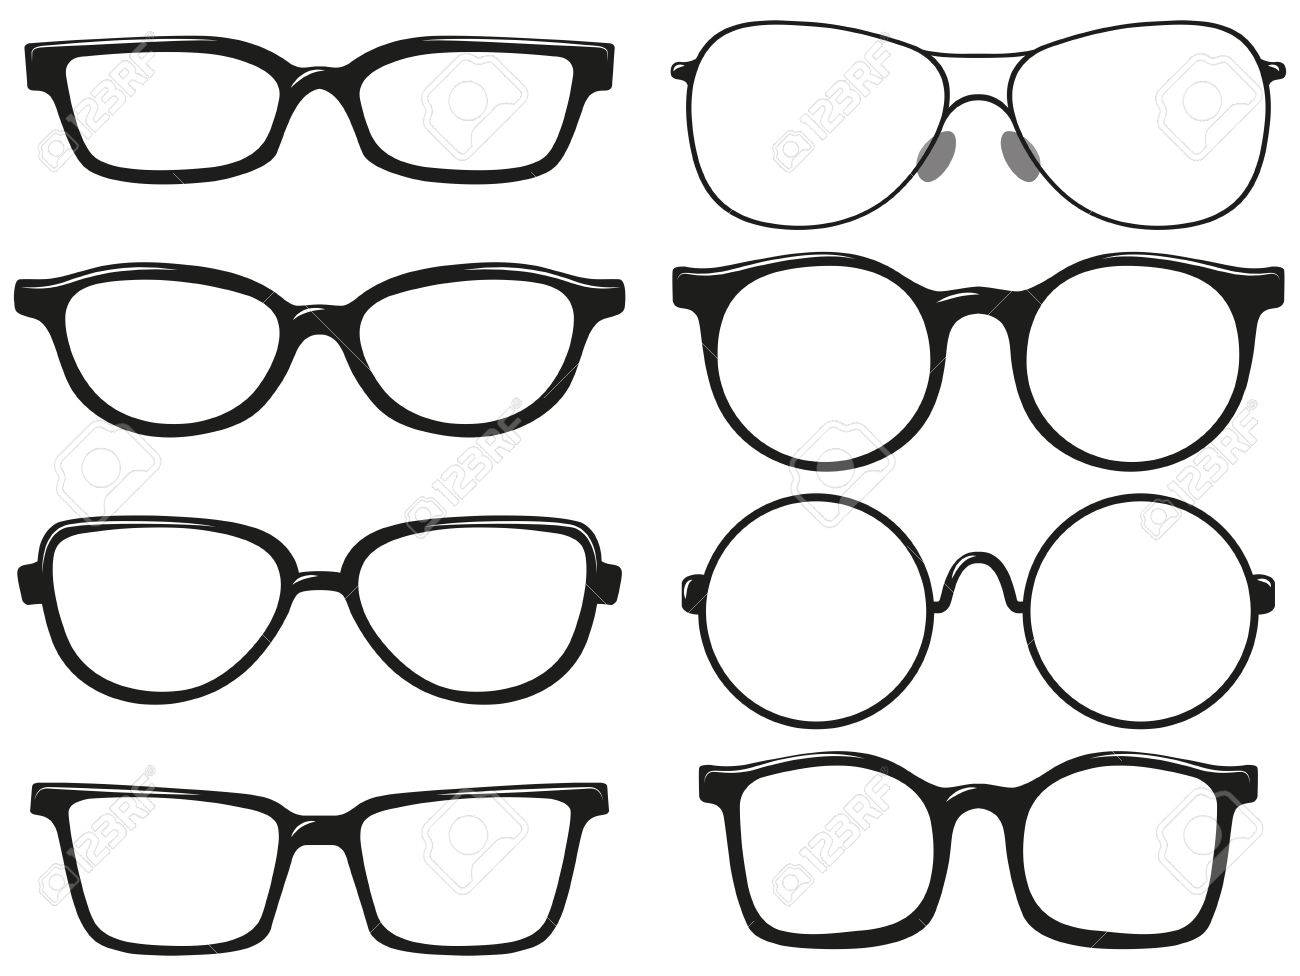 Different Design Of Eyeglasses Frames Illustration Royalty Free ...